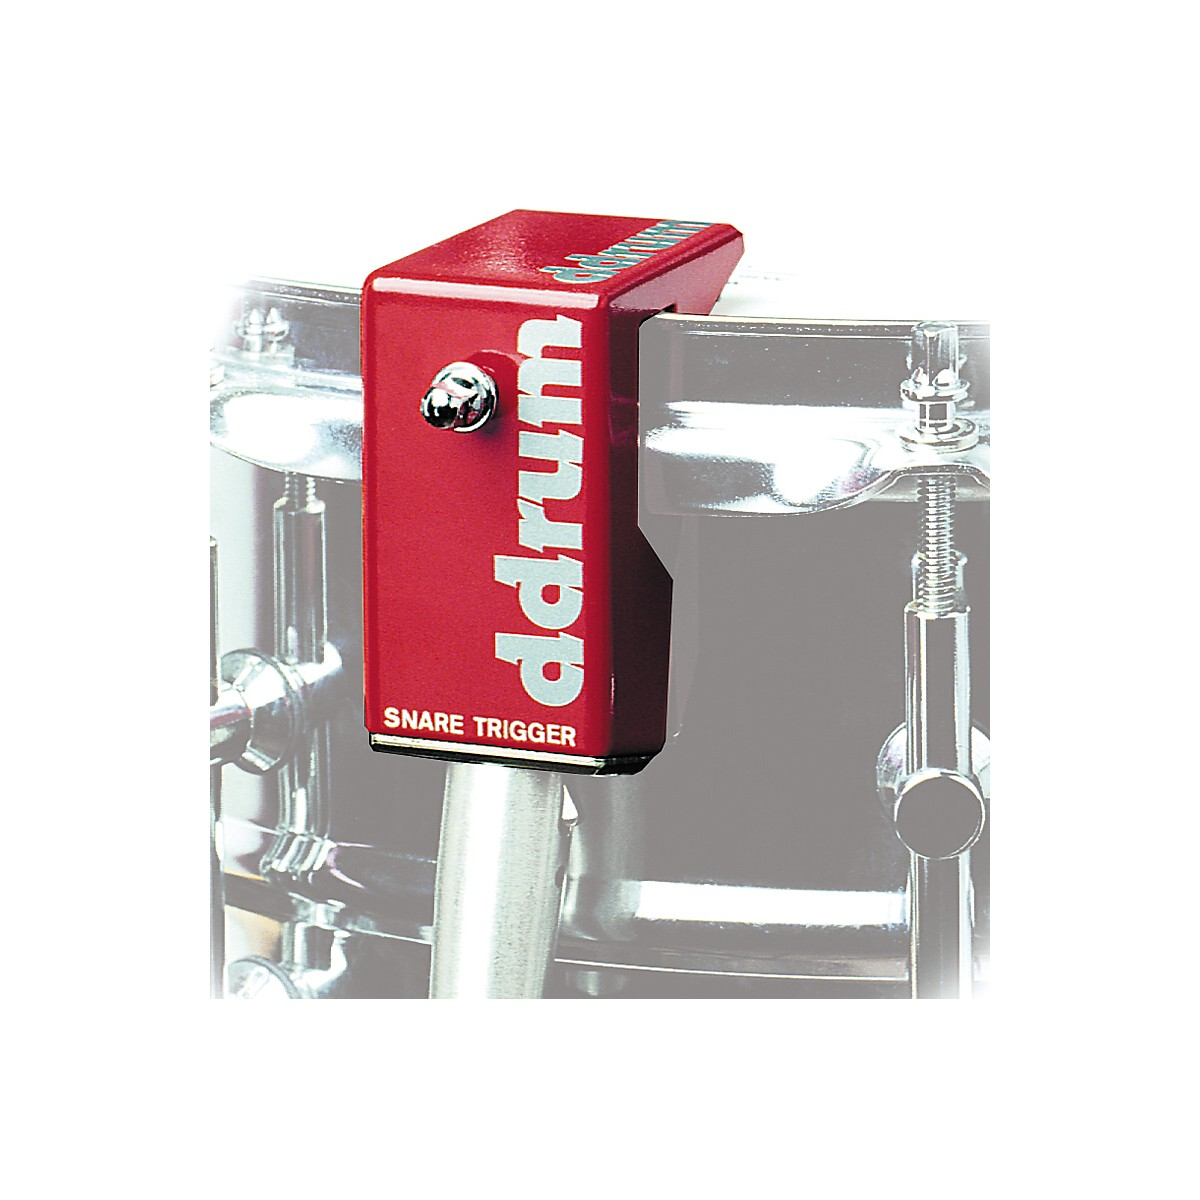 ddrum Snare Trigger